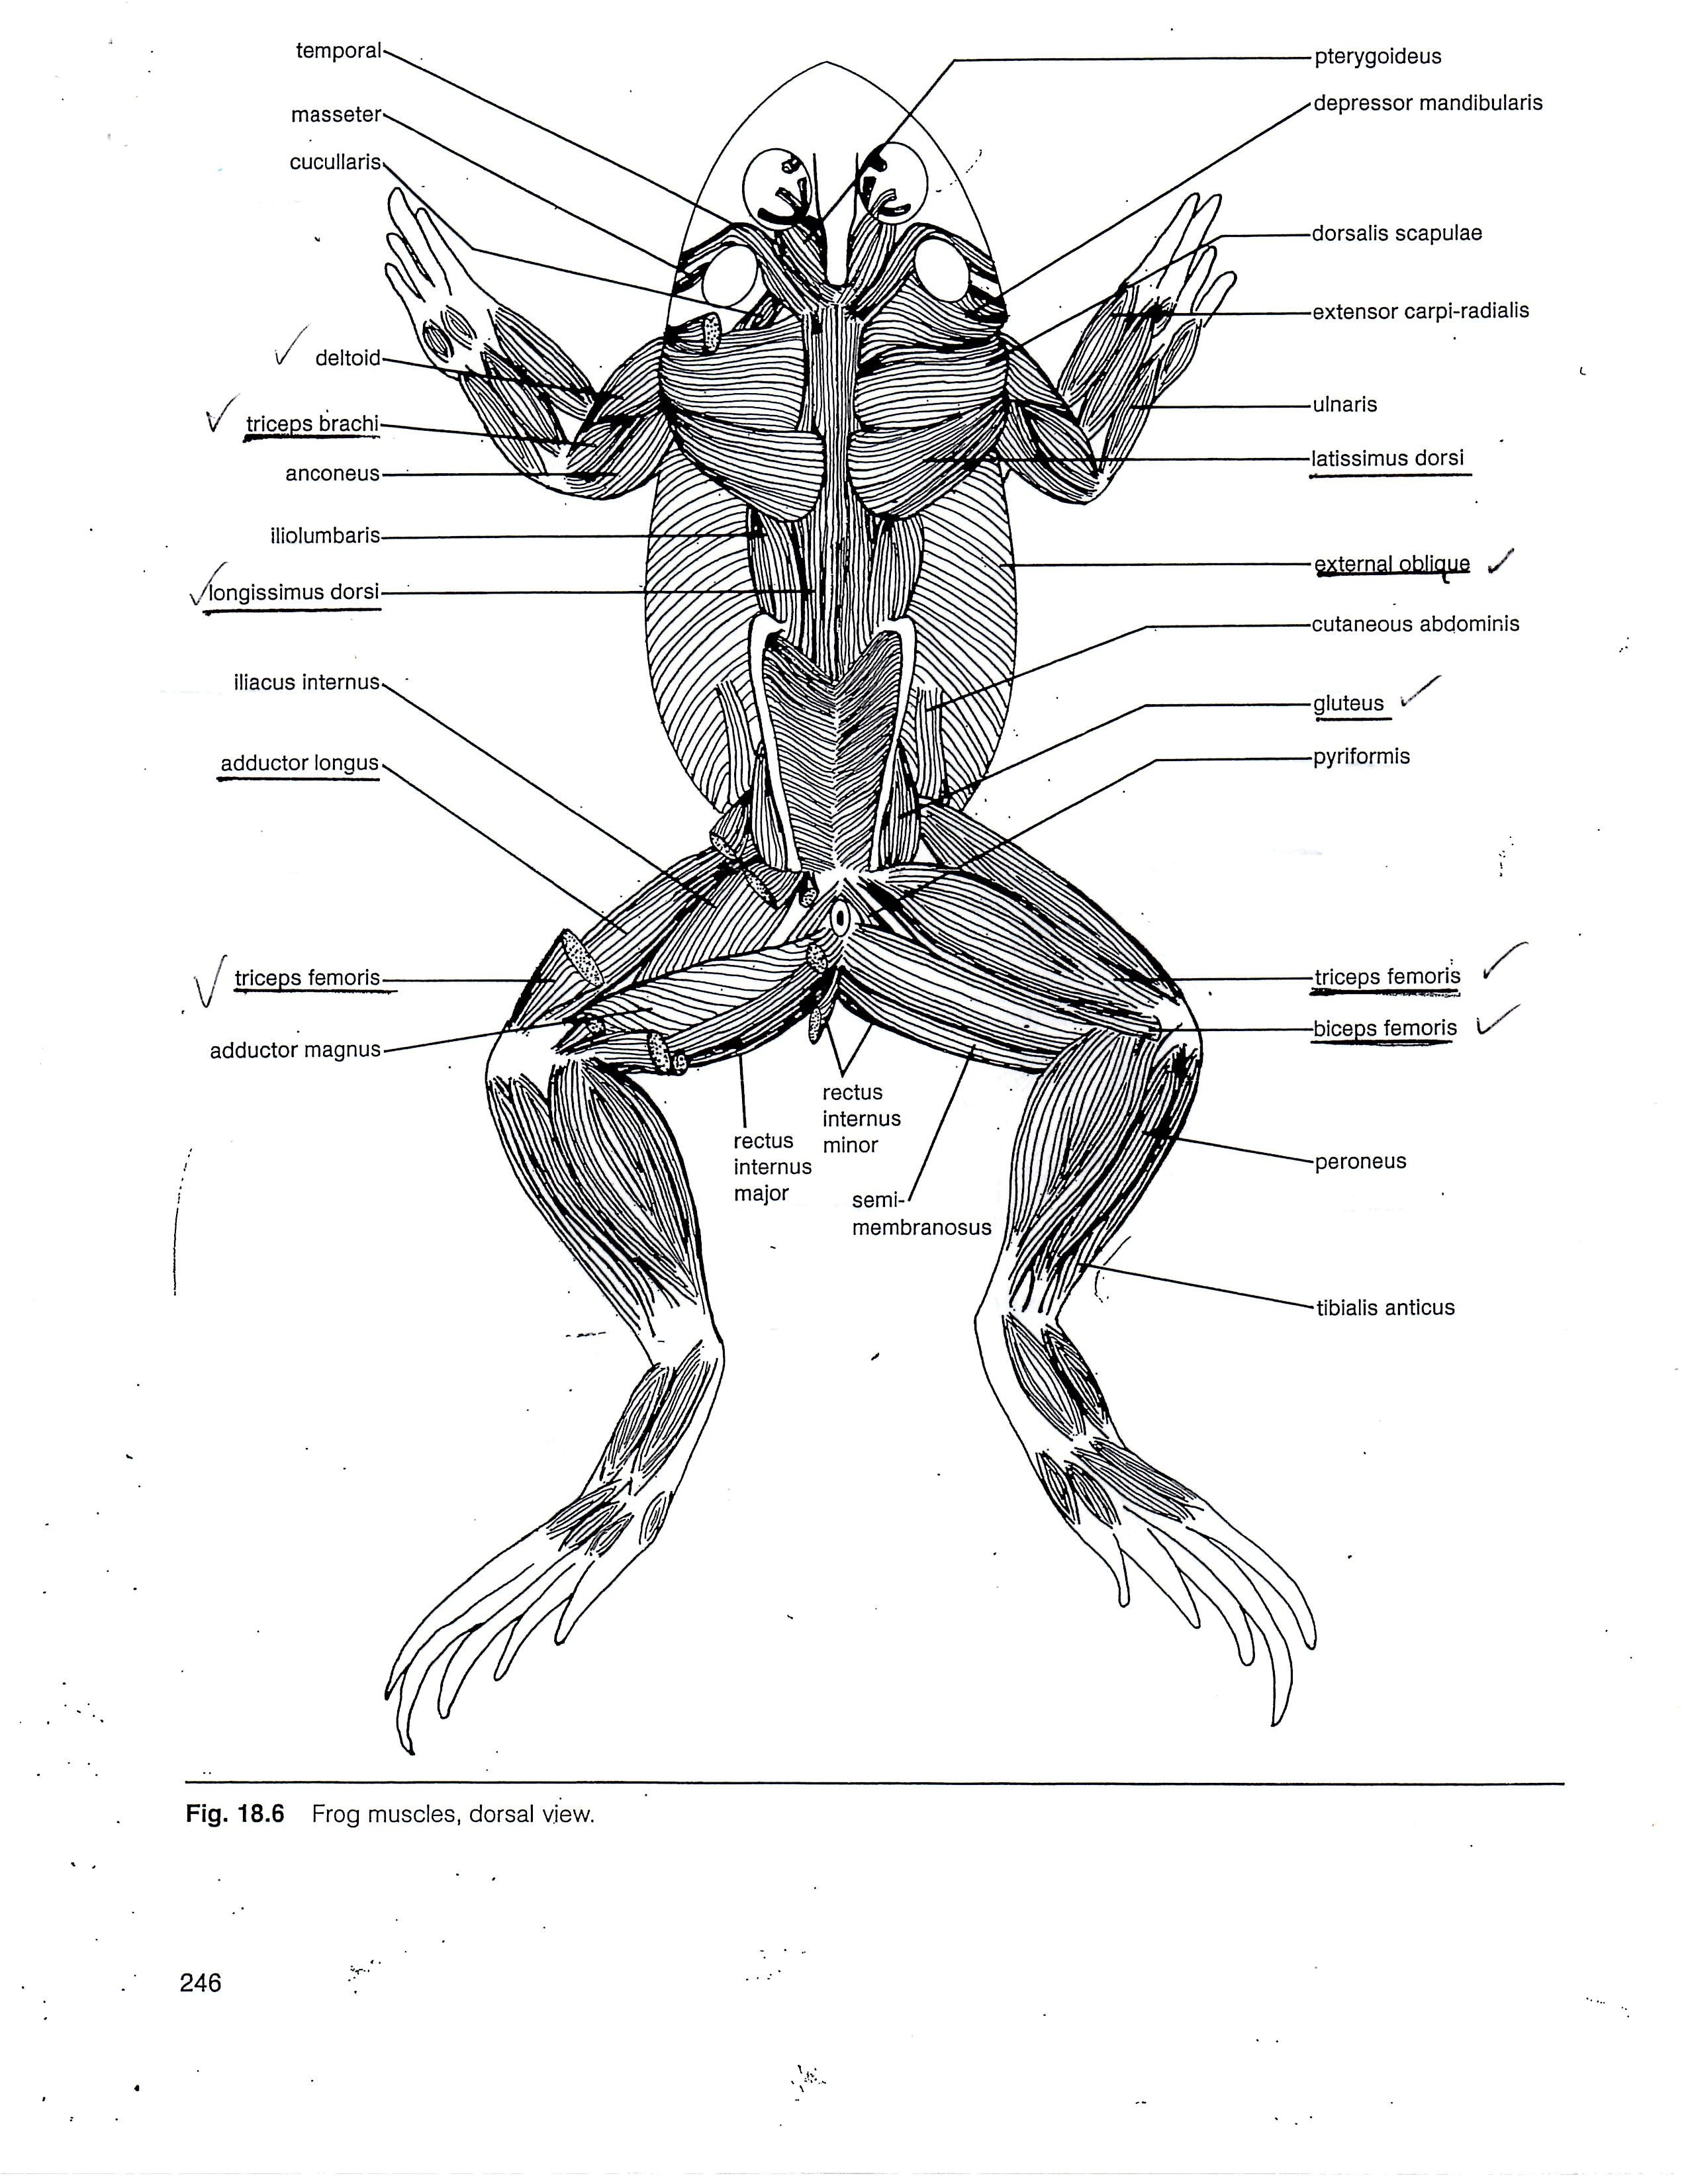 frog muscle anatomy muscular system of the frog human anatomy diagram [ 2550 x 3300 Pixel ]